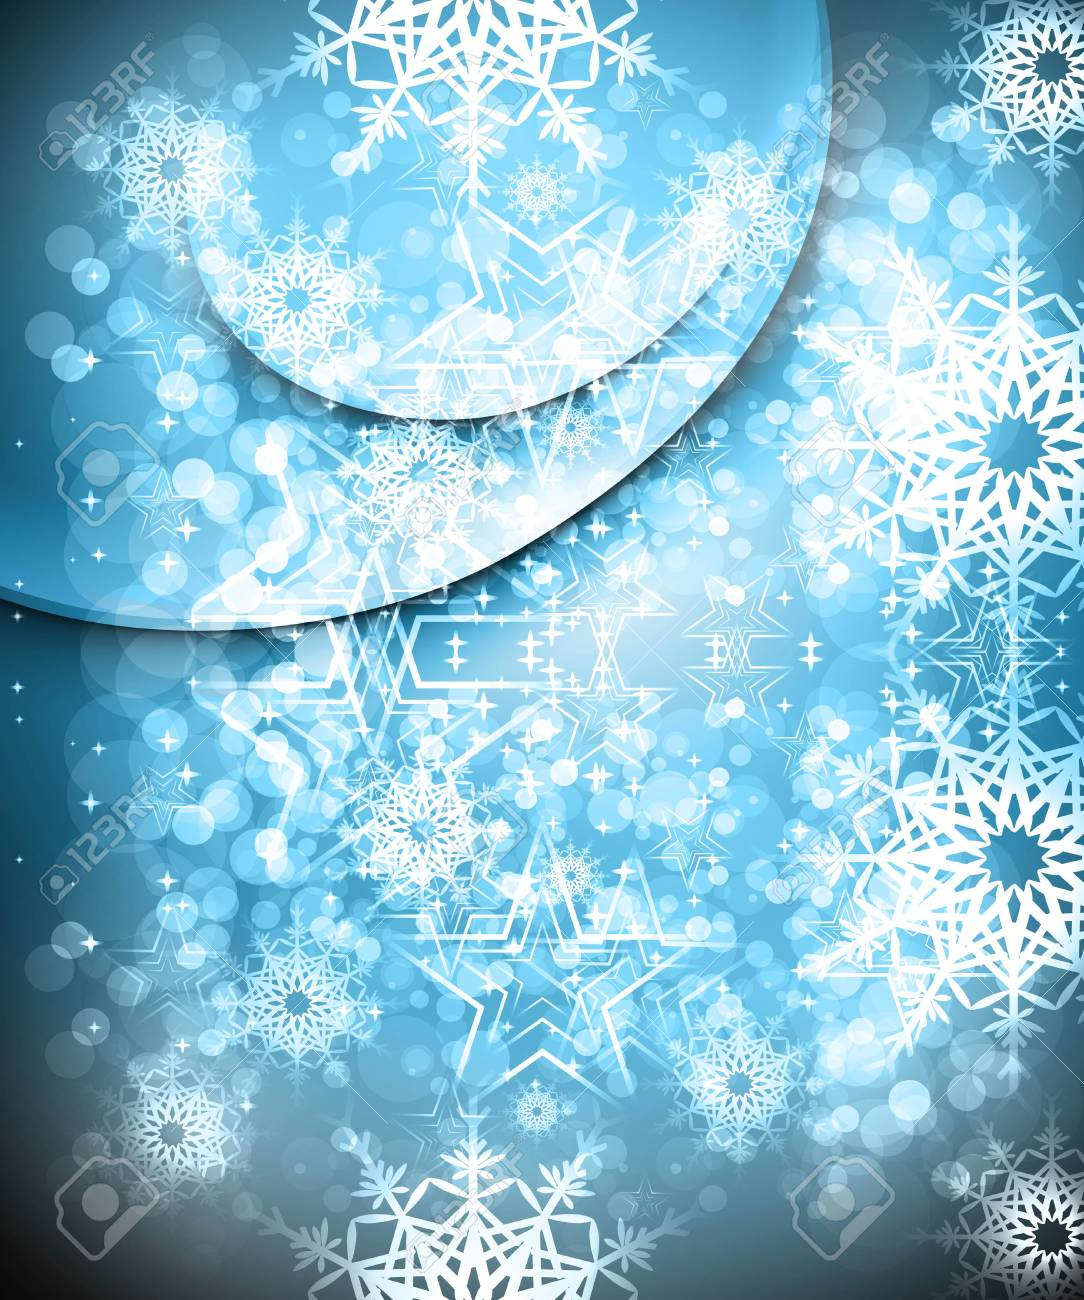 merry christmas celebration blue colorful card background vector Stock Vector - 17945959